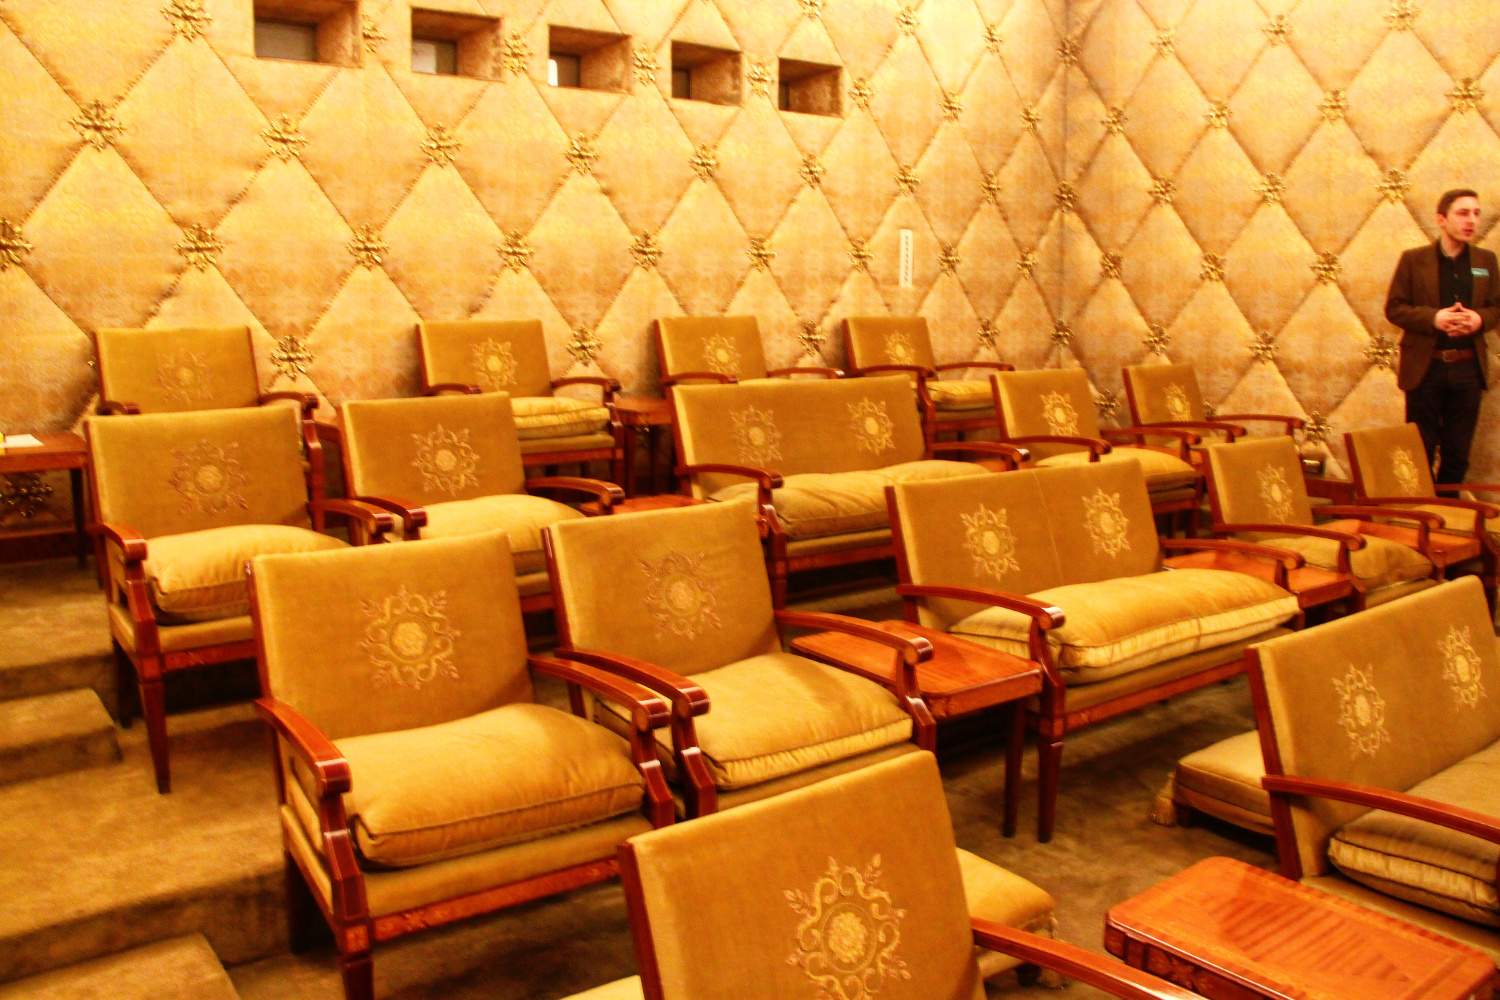 Primaverii (Spring) Palace, Ceausescu's private residence - Cinema room